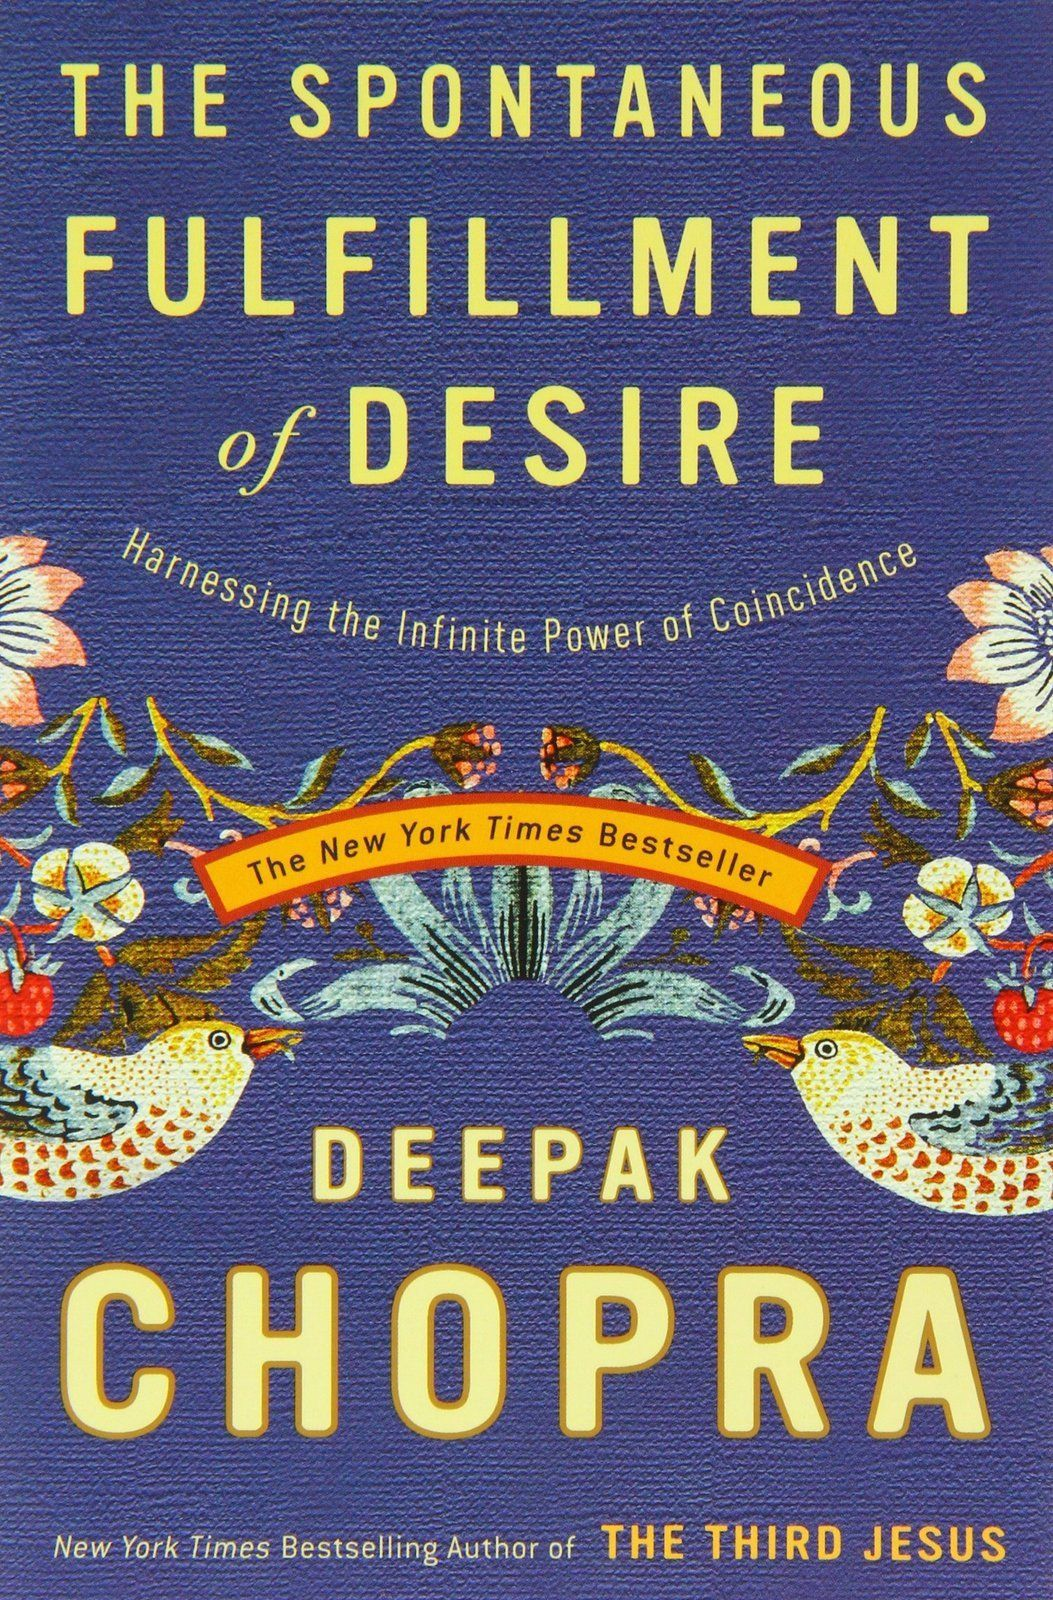 The Spontaneous Fulfillment of Desire: Harnessing the Infinite Power